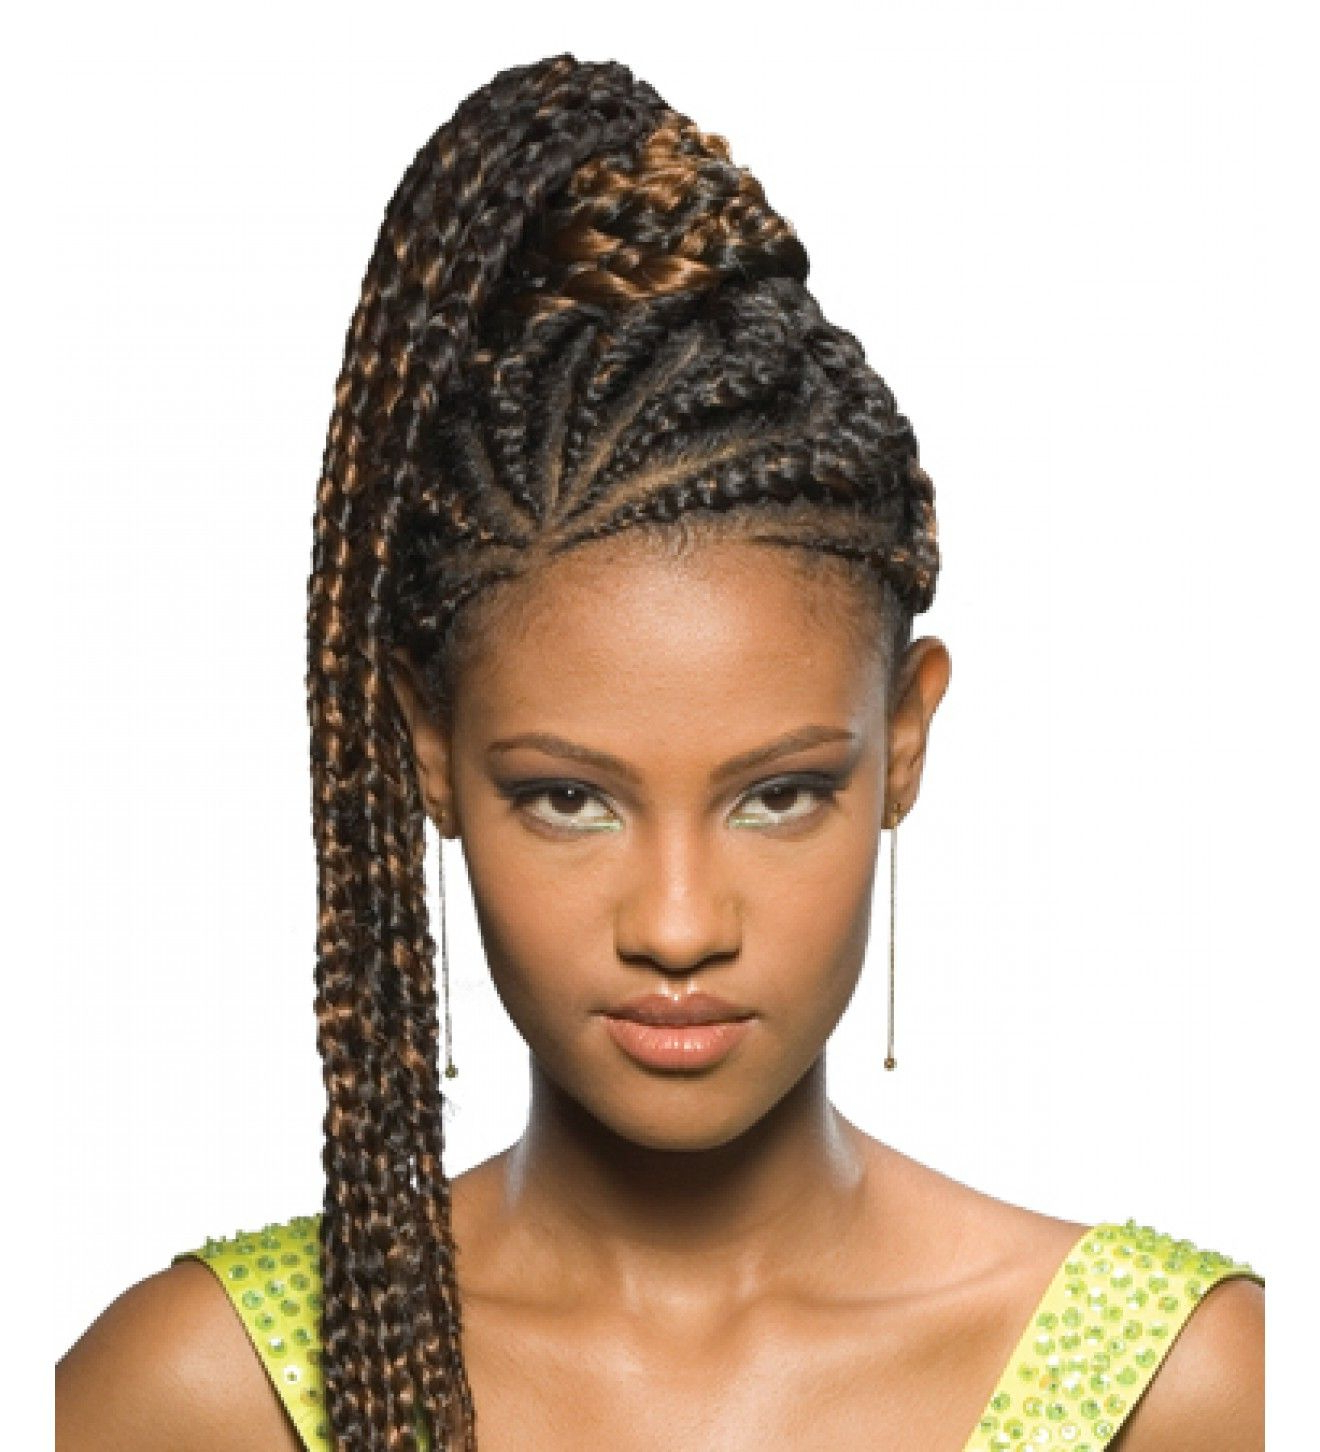 Fake Braided Pony Tails For Black Women (Gallery 8 of 20)